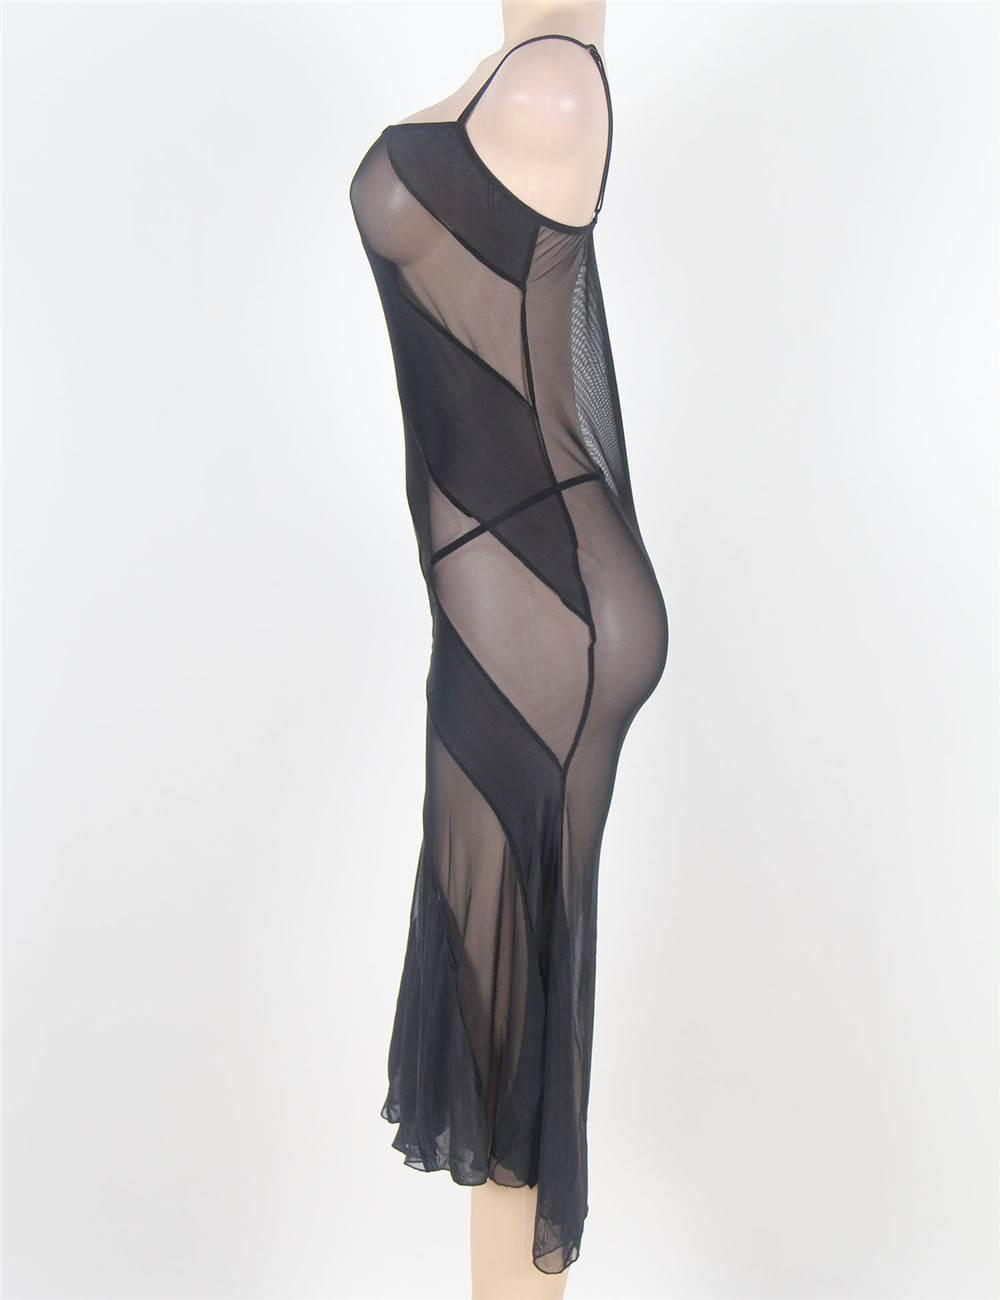 Soiree Long Black Nightgown side view